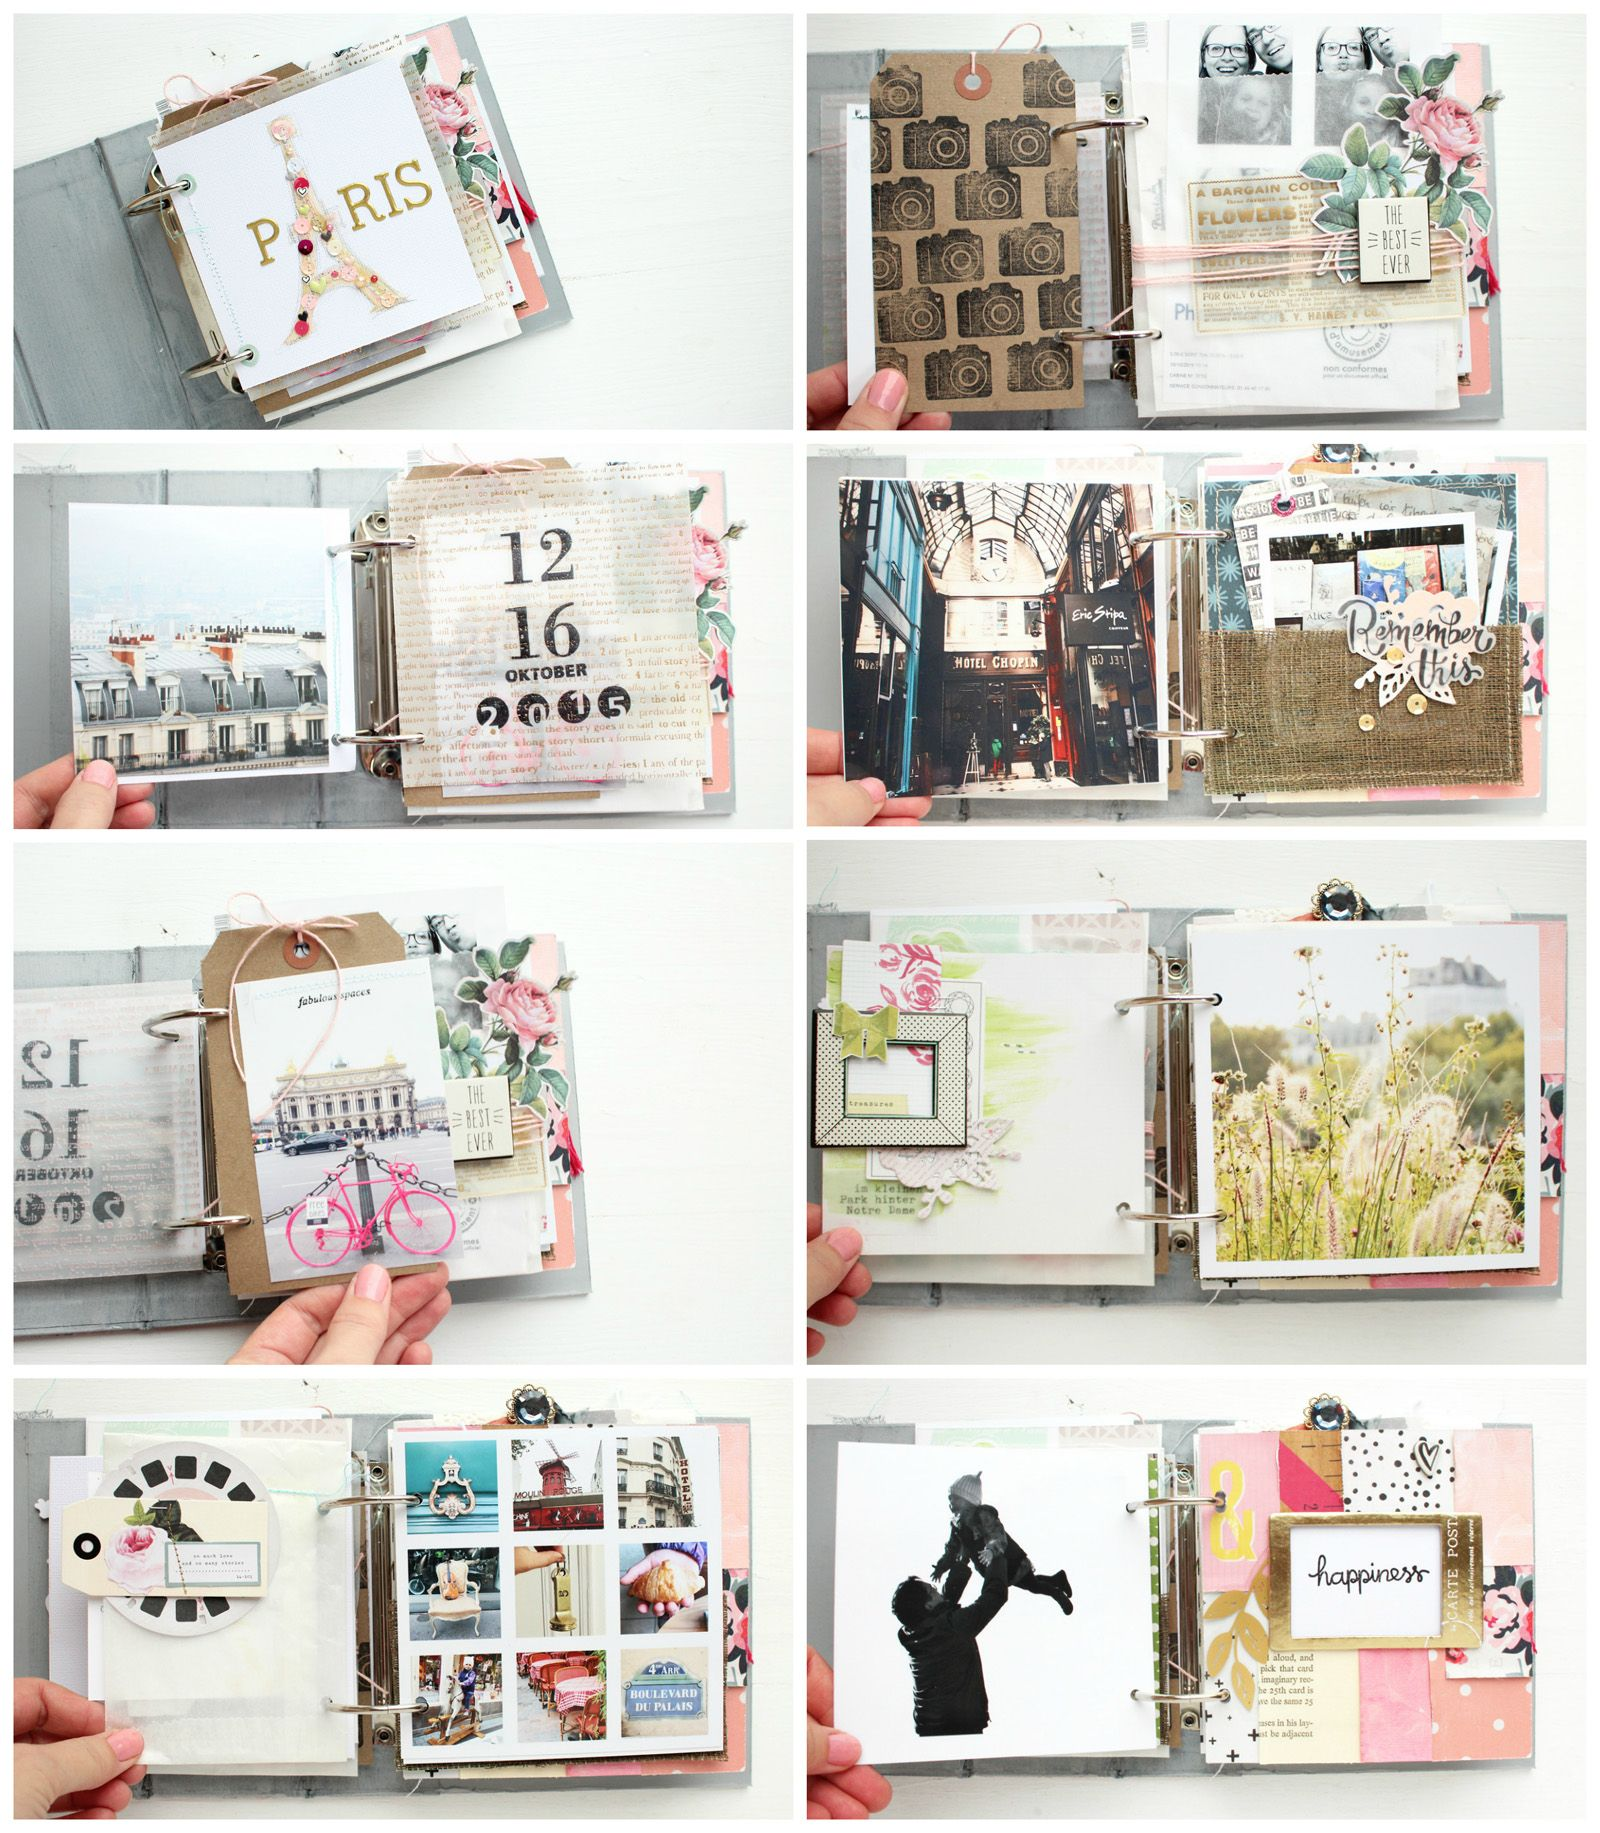 mini album paris details 1 steffi ried scrapbooking minialbum cratepaper selbermachen. Black Bedroom Furniture Sets. Home Design Ideas